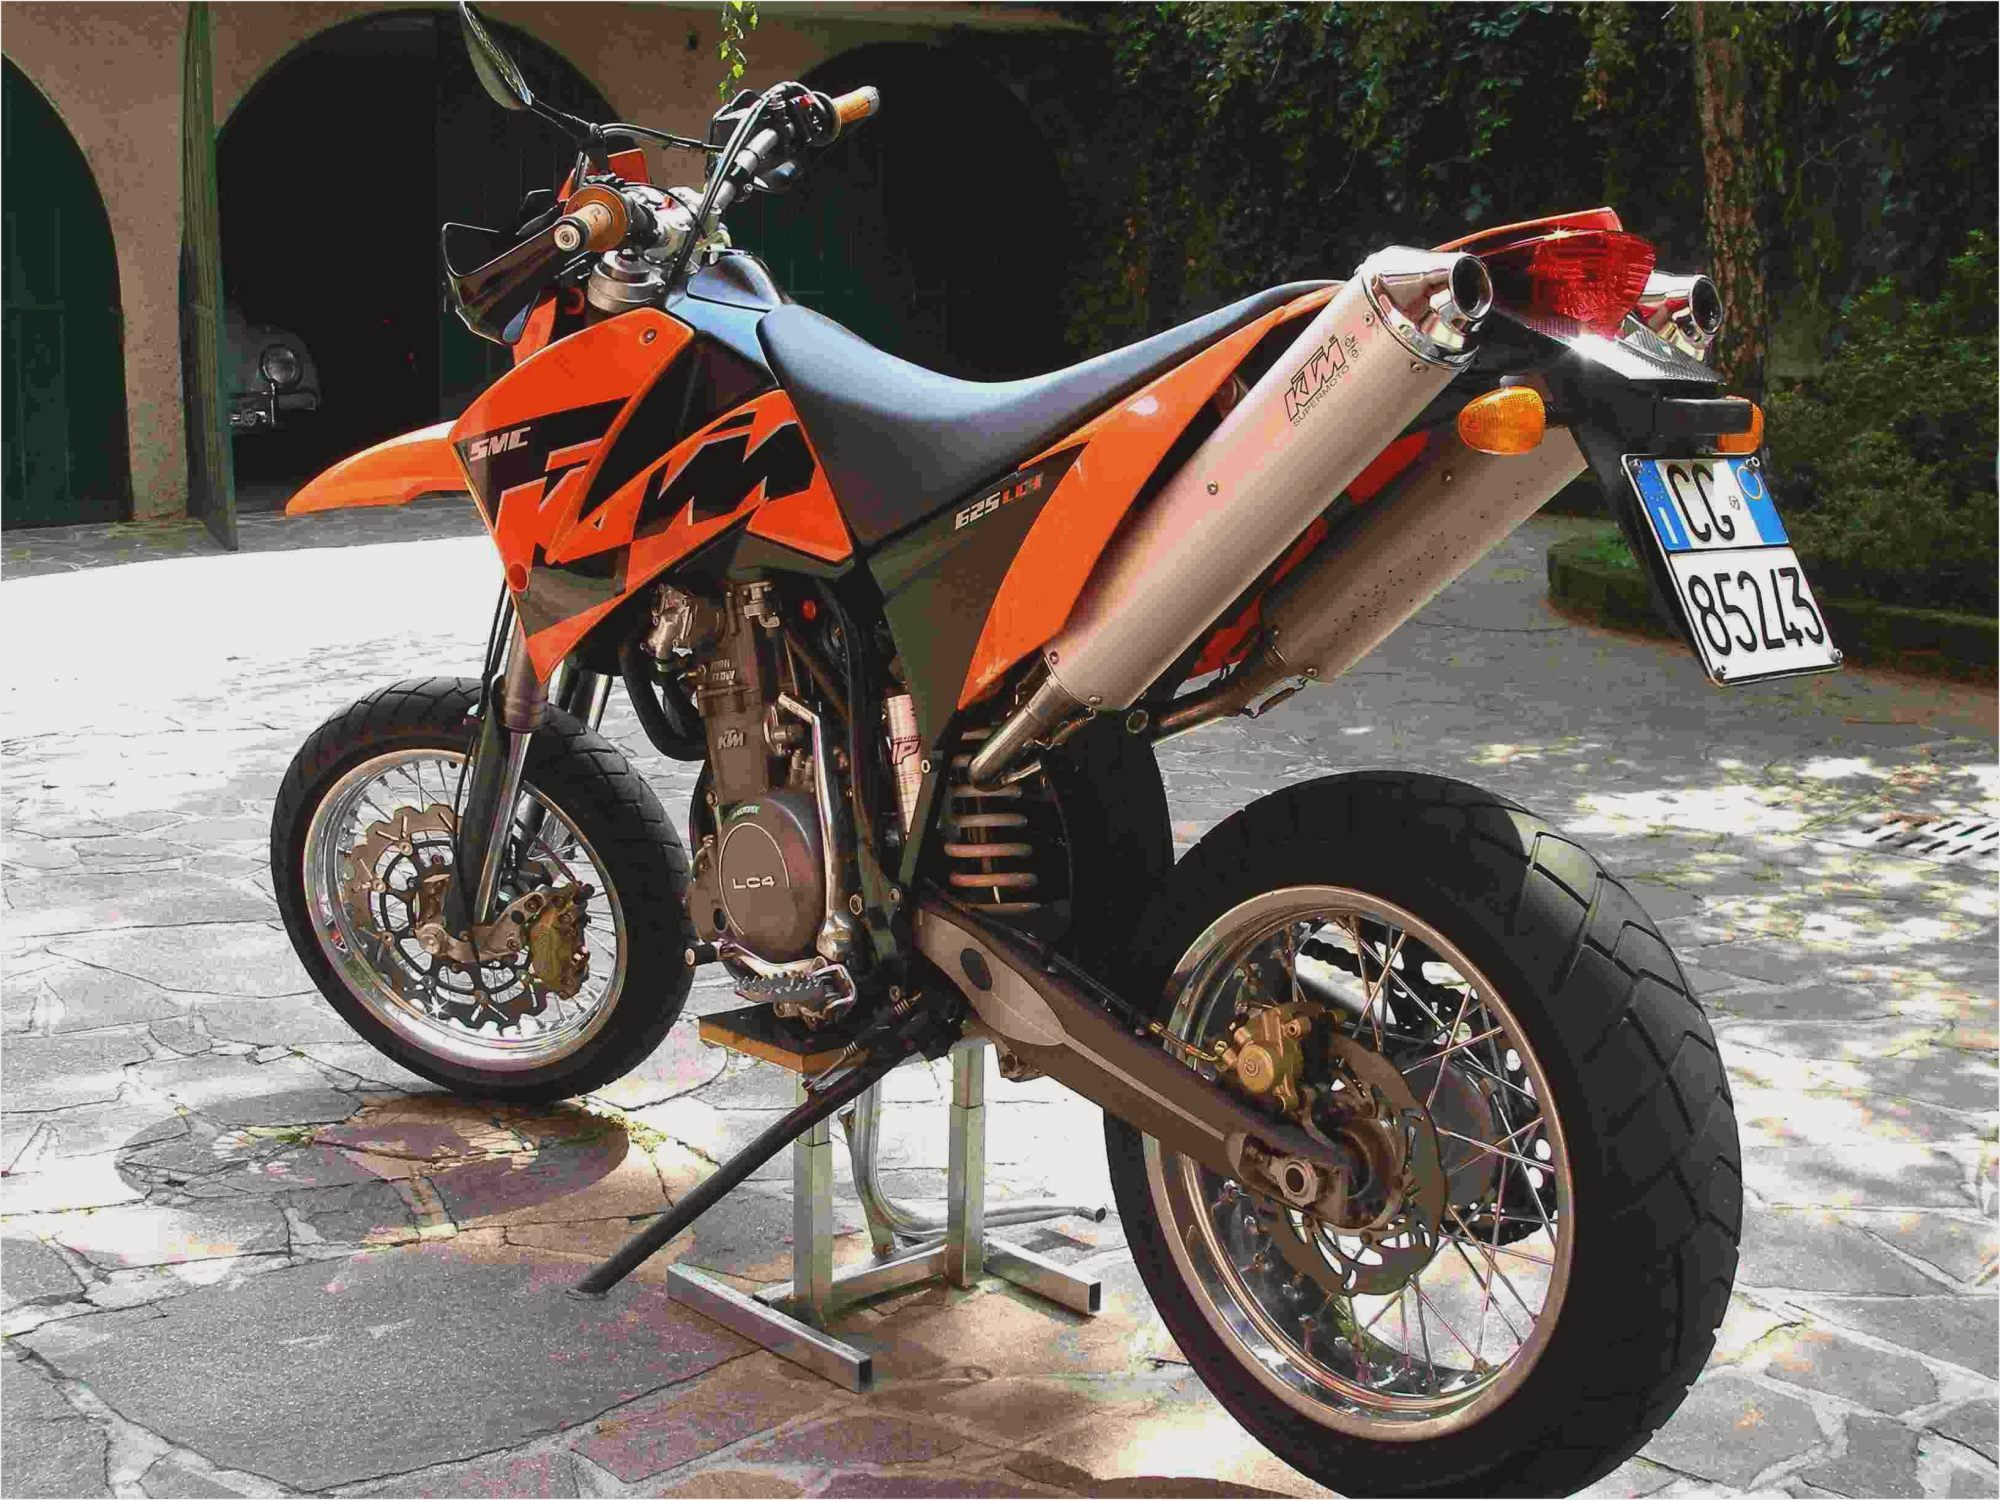 hight resolution of back download ktm 625 sxc picture 8 size 3268x2452 next